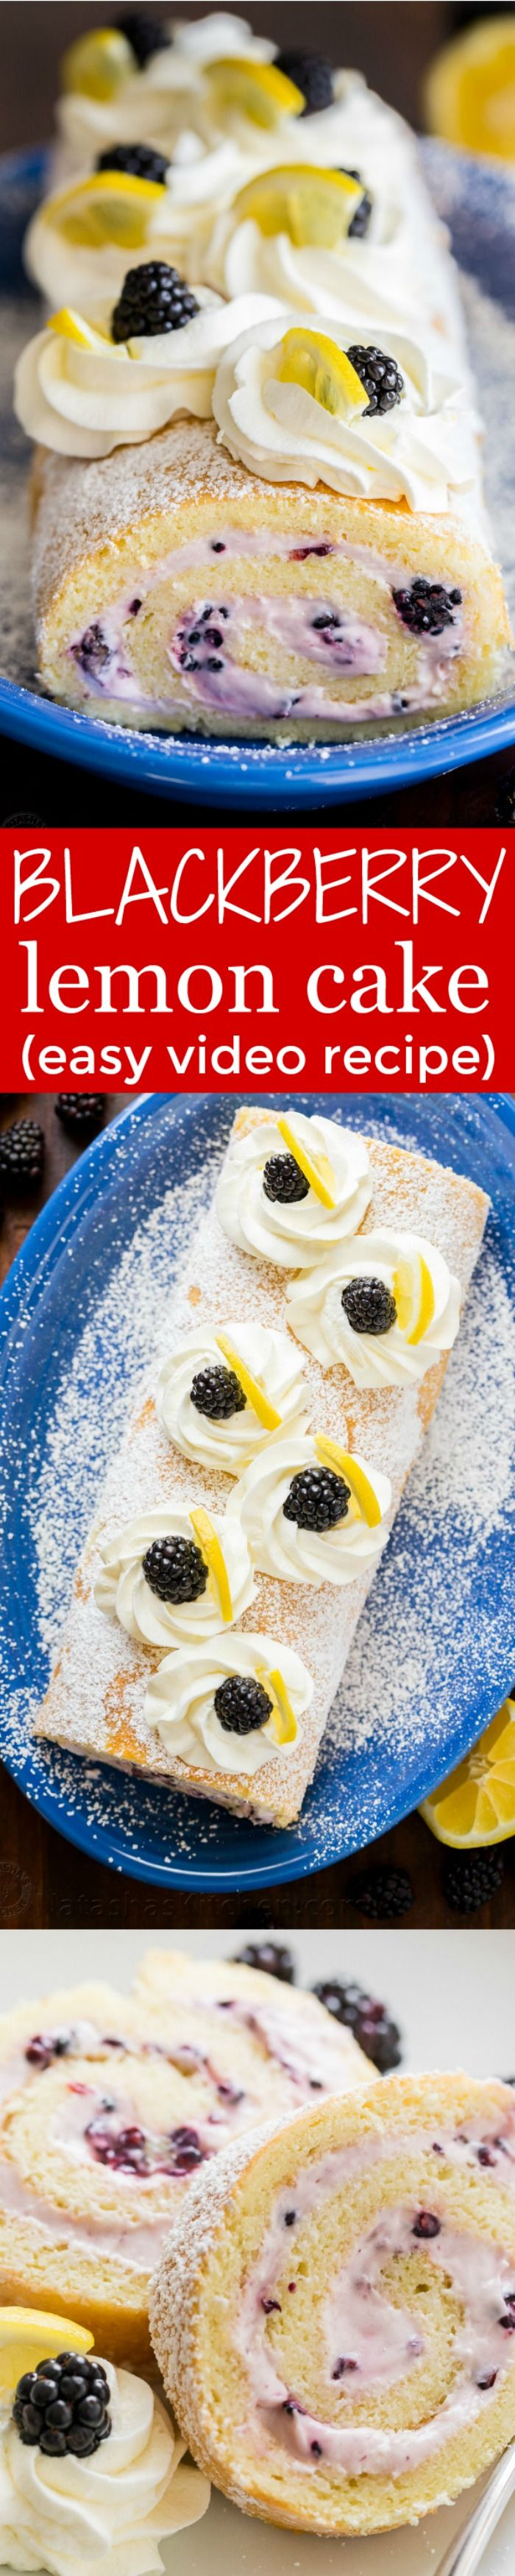 Fluffy and moist Blackberry Lemon Cake Roll (Swiss Roll) that's easier than you think! Impress everyone with this show-stopping Blackberry Lemon Cake Roll | natashaskitchen.com